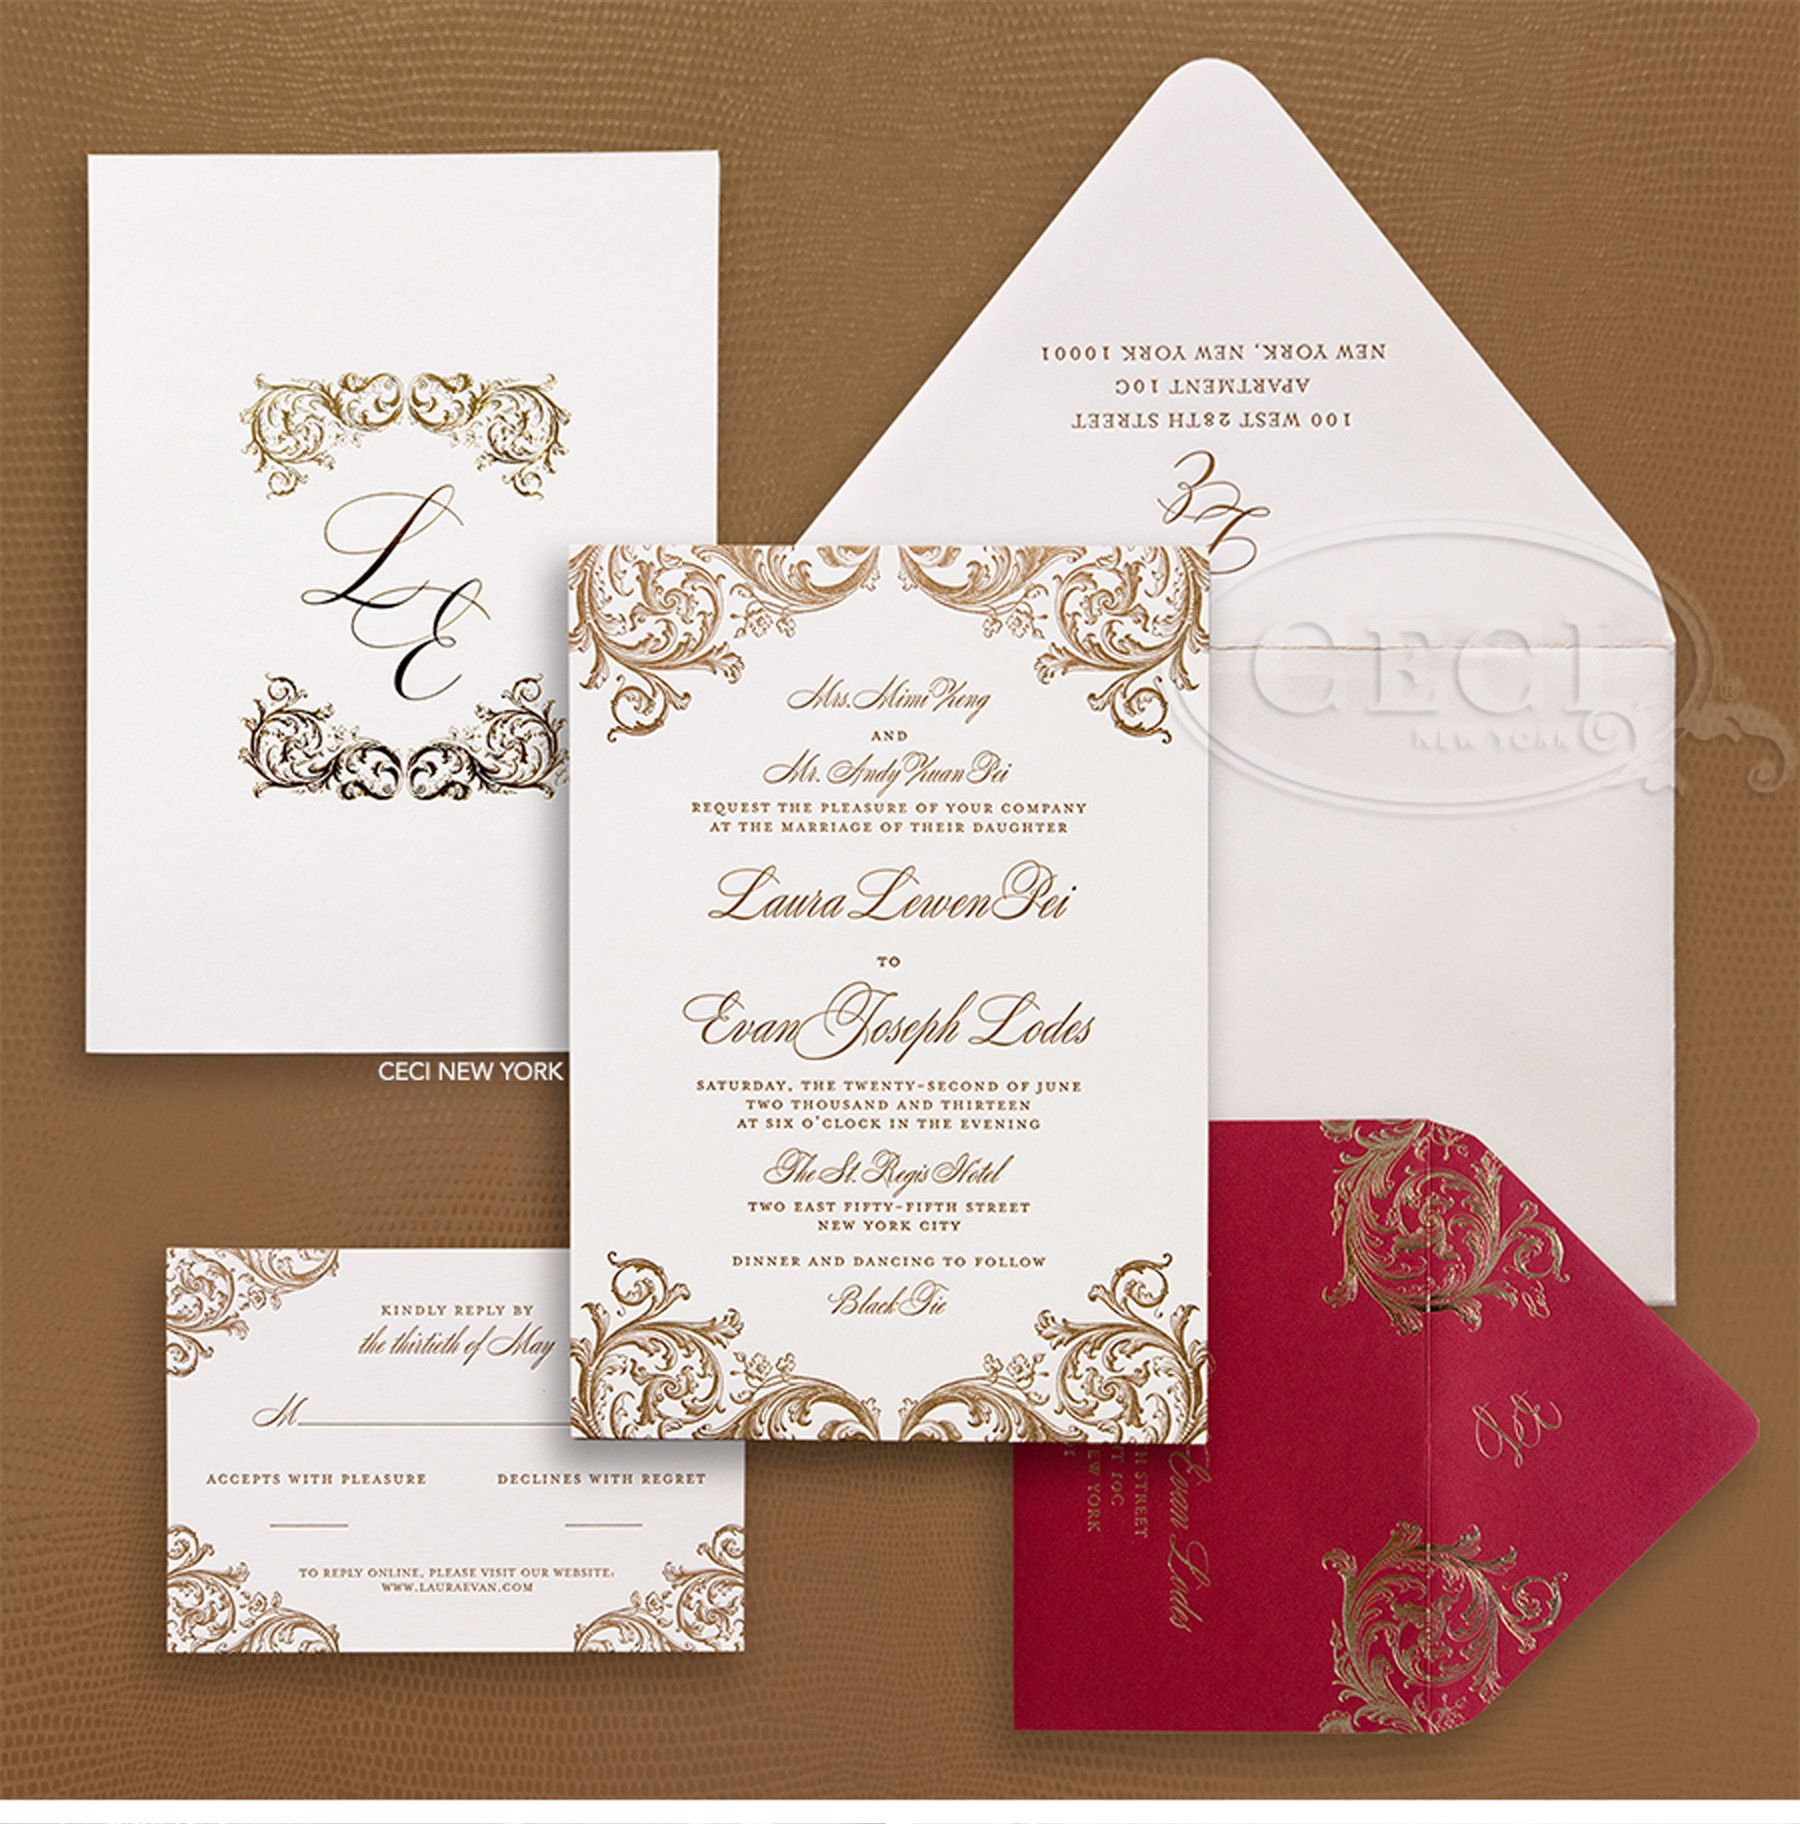 not on the high street winter wedding invitations%0A Luxury Wedding Invitations by Ceci New York